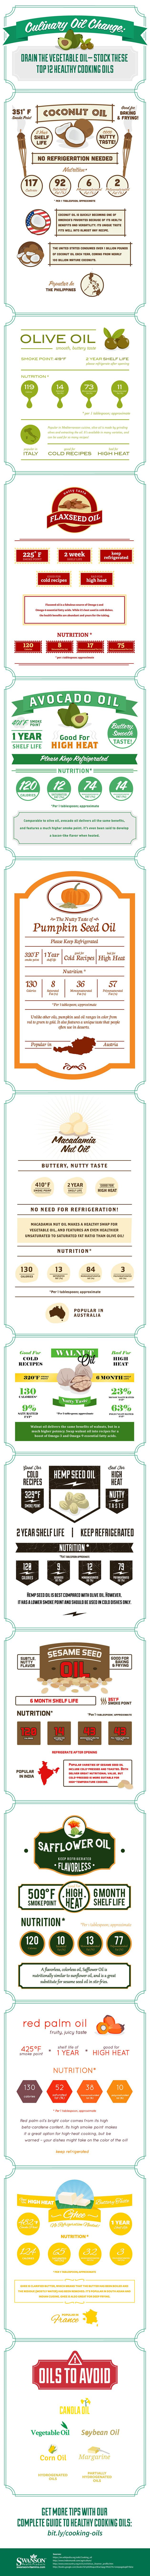 Top 12 Healthy Cooking #Oils Infographic